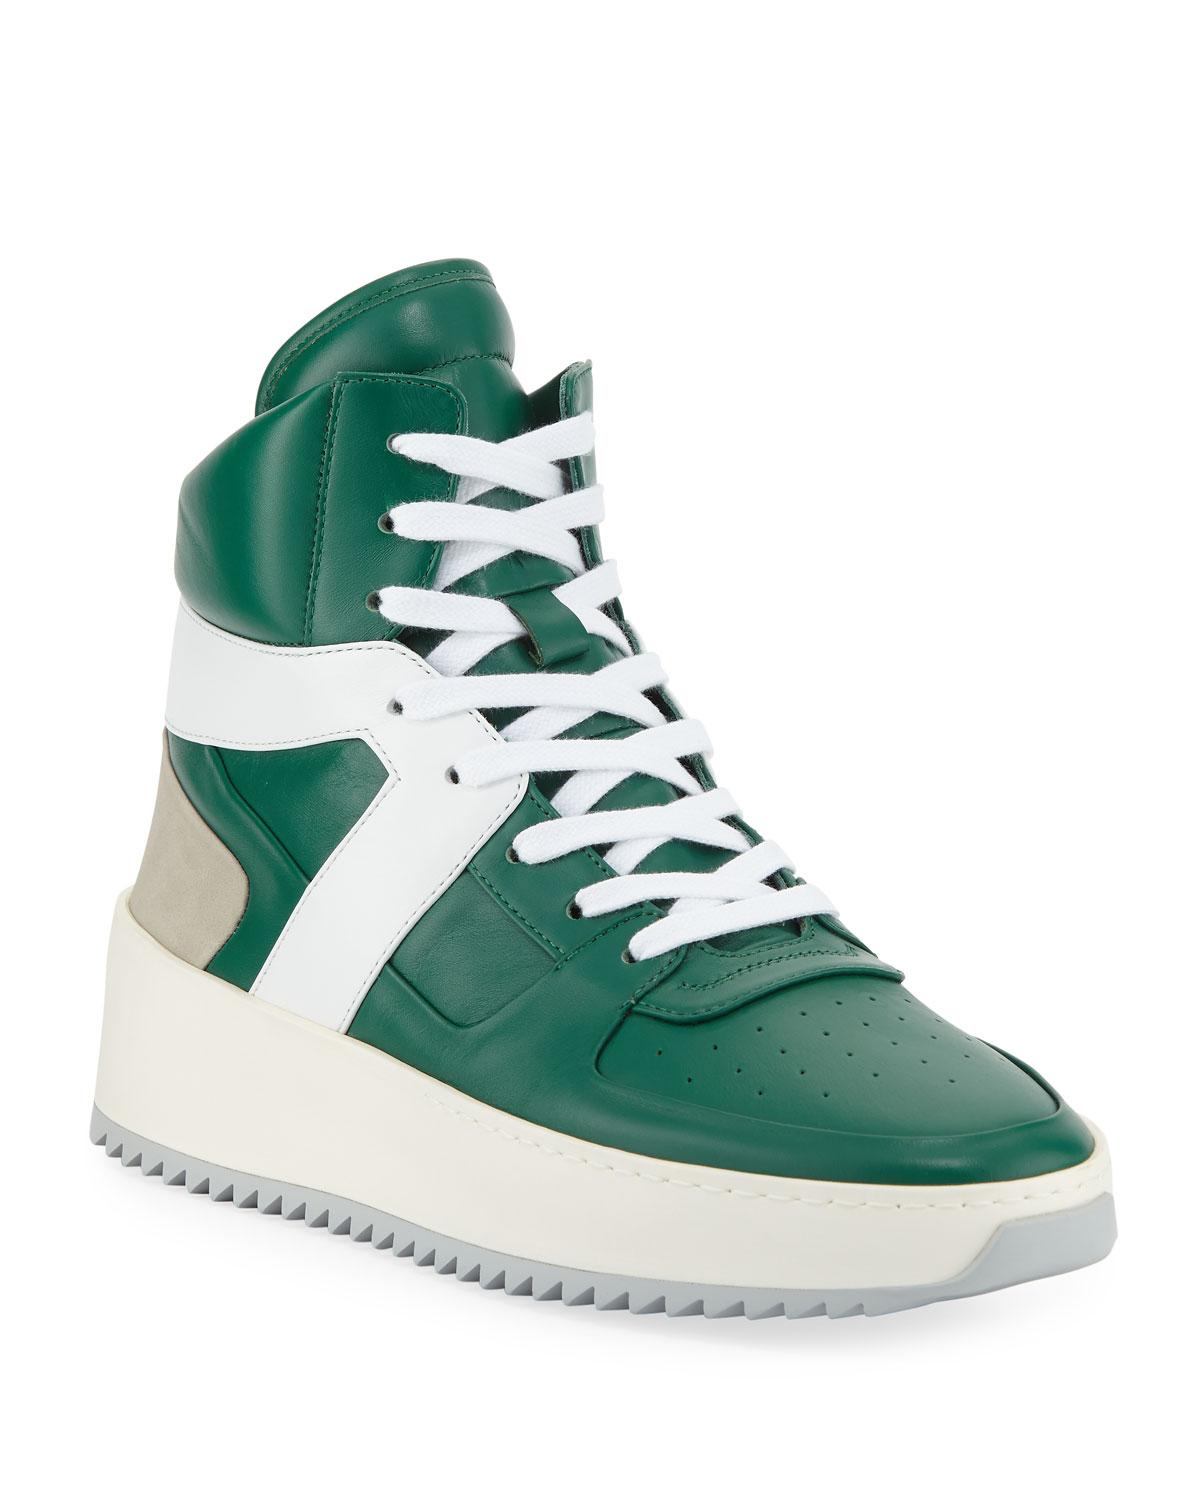 0818869a1ba Fear of God Men s Leather High-Top Basketball Sneakers